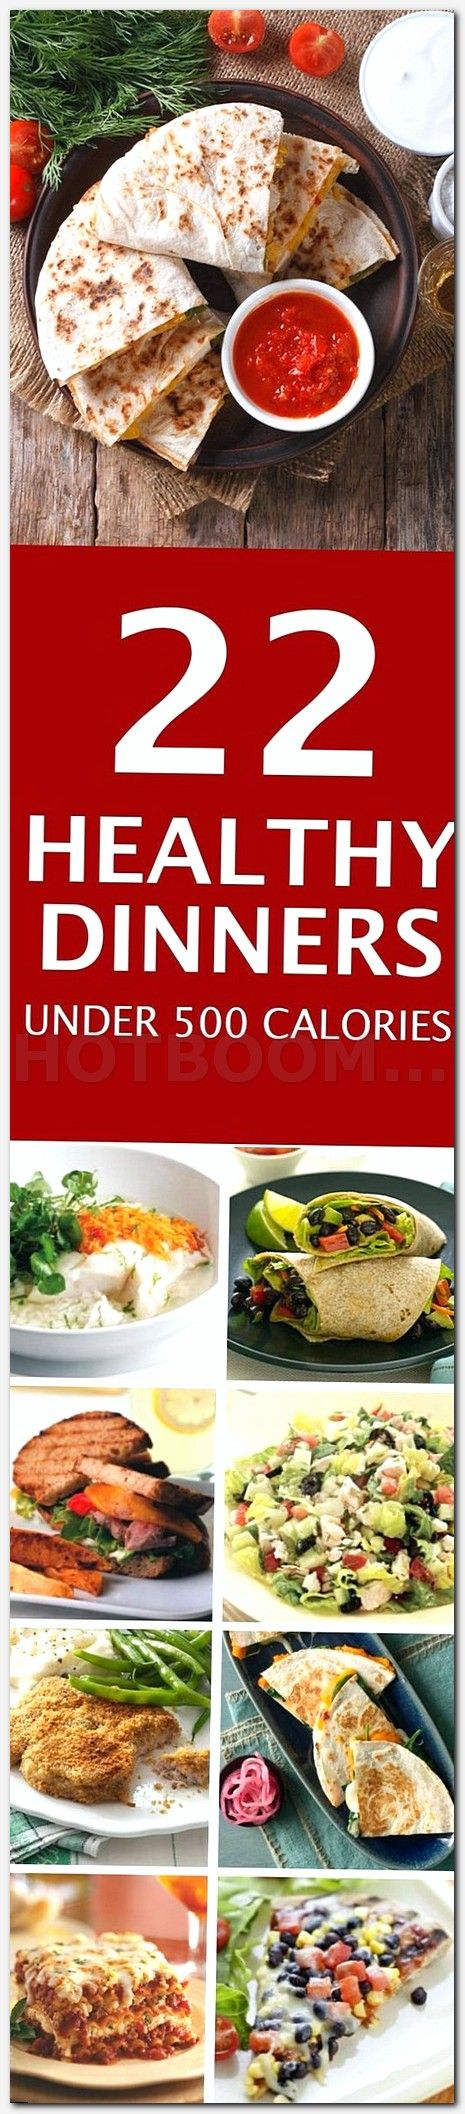 , lear liquid recipes, cheap easy vegan meals, bacaklardaki selulitlerden kurtulmak, candida killers, best diets of 2017, slimming world meal plan, hzl kilo almak icin diyet, good low sodium foods, 5 2 diet 500 calorie meal plans, how can i reduce my weight in 10 days, what foods burn fat the most, 16 week weight loss challenge, nutrition in pregnancy, detoks cay tarifi ender sarac